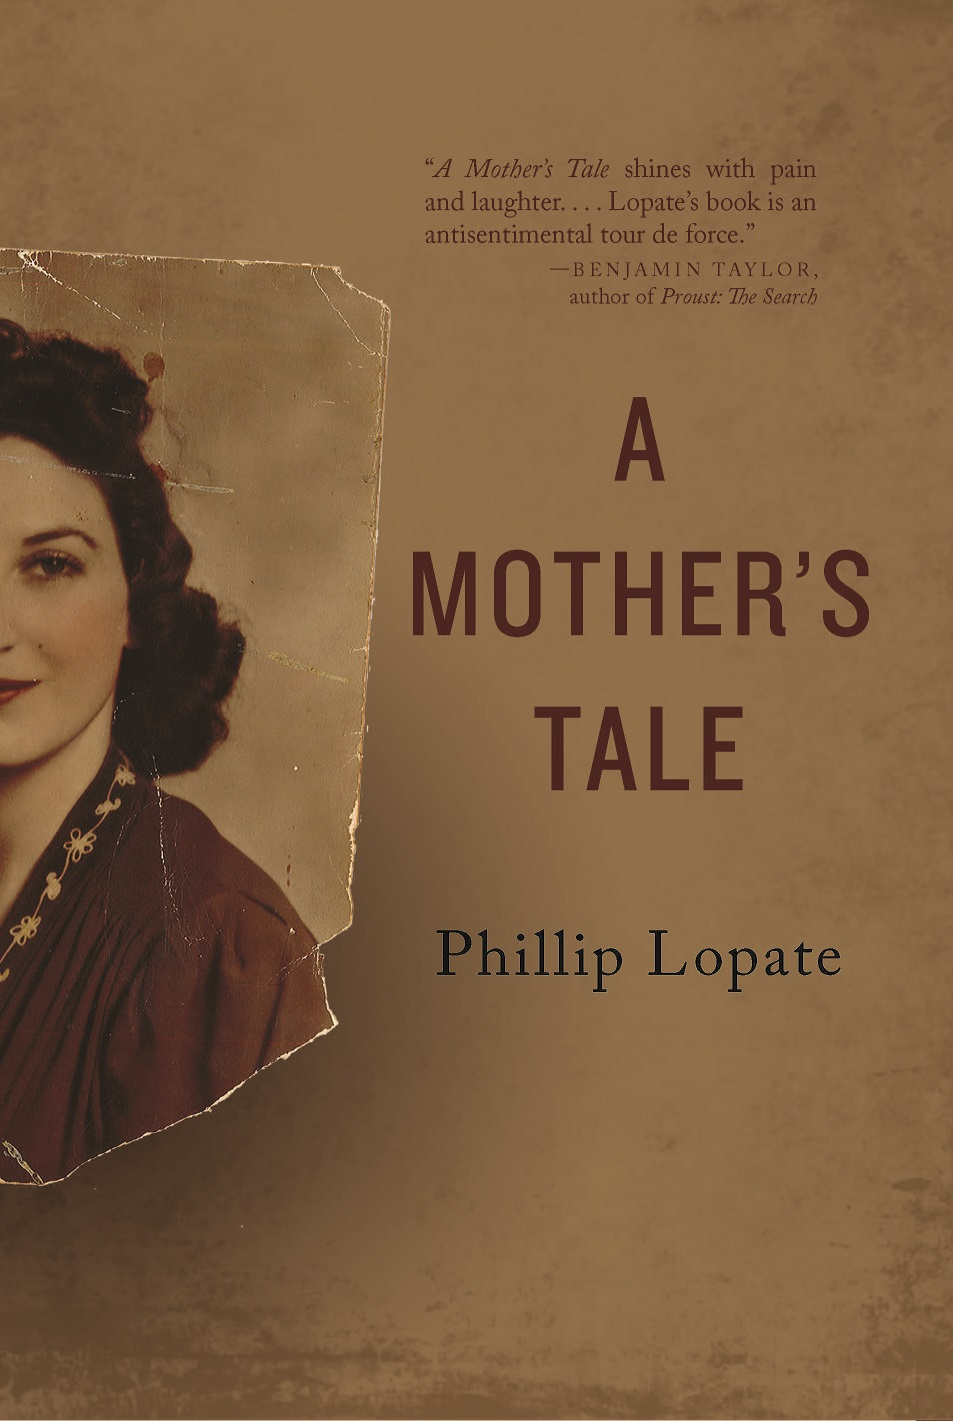 Phillip Lopate: A Mother's Tale